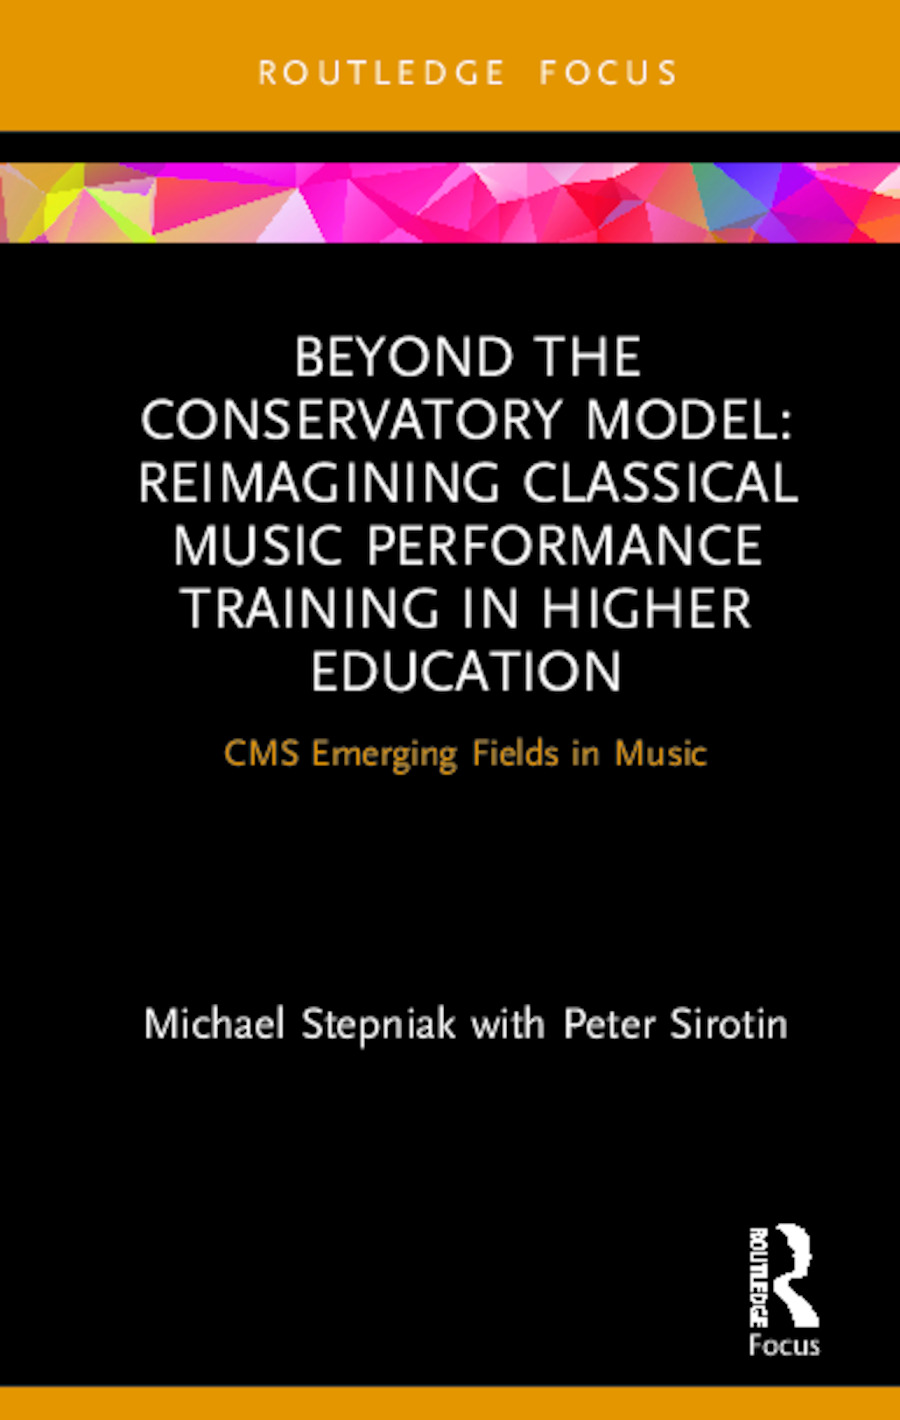 Beyond the Conservatory Model: Reimagining Classical Music Performance Training in Higher Education book cover